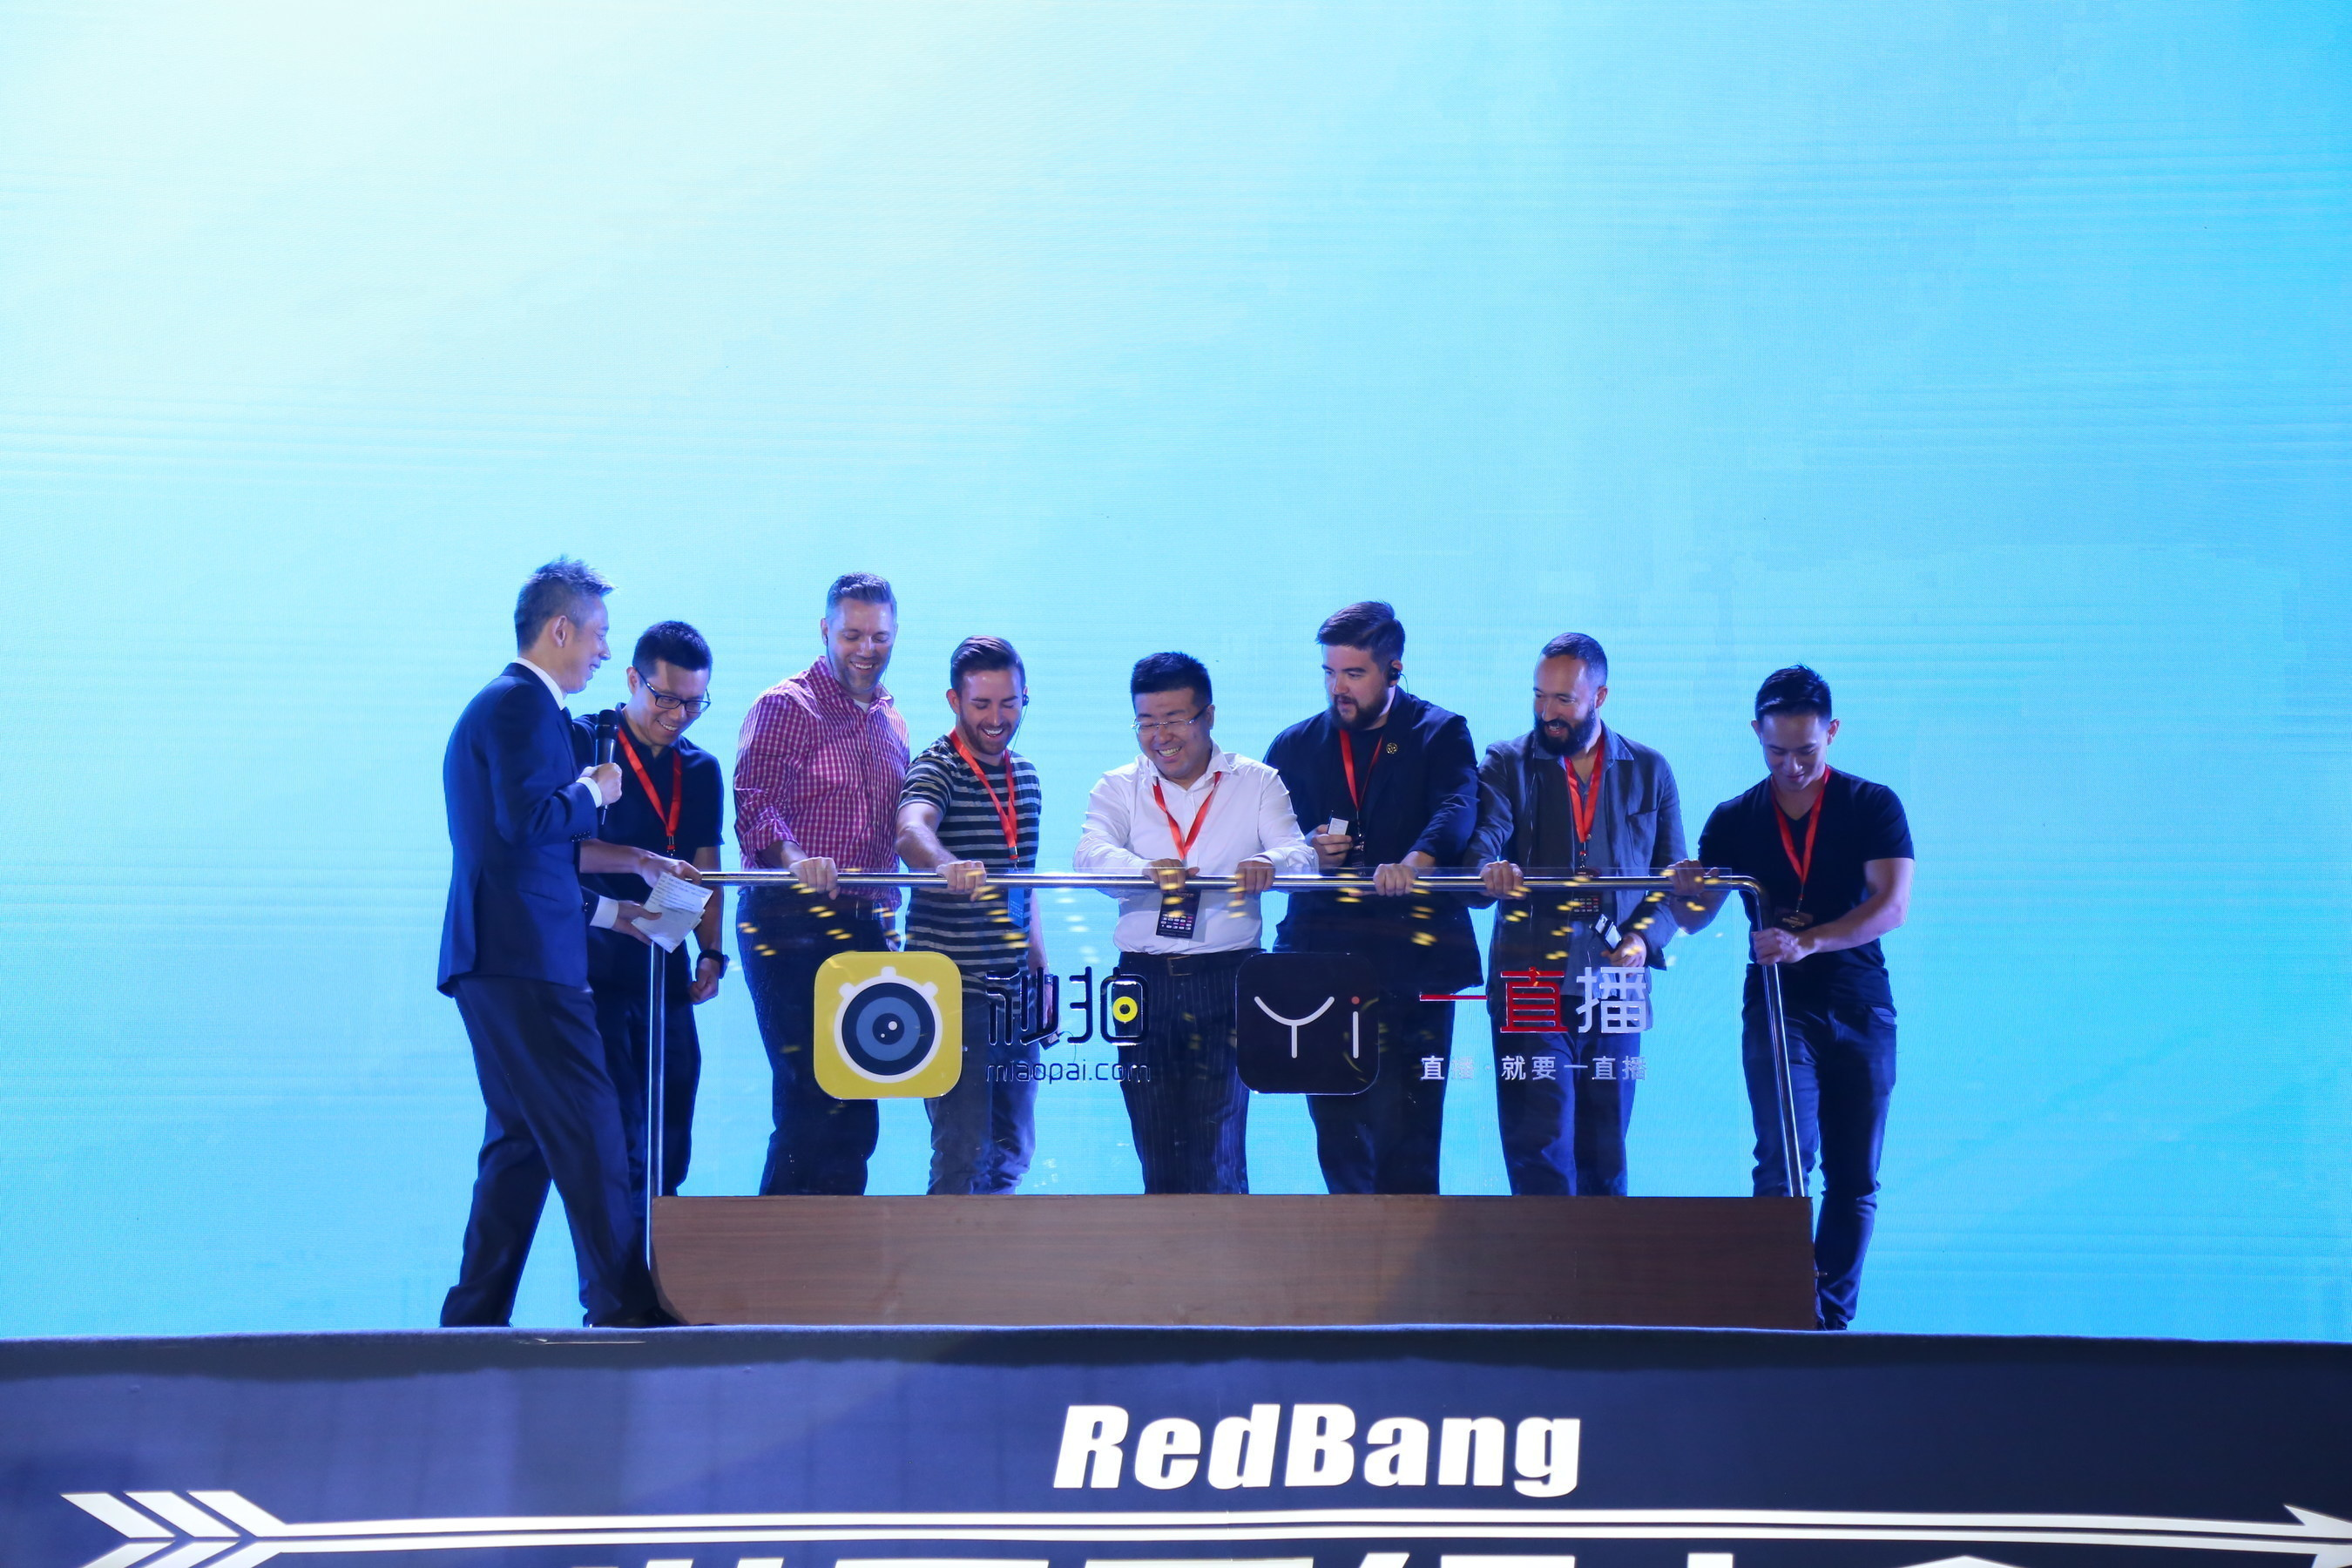 The First RedBang Summit in Beijing, China